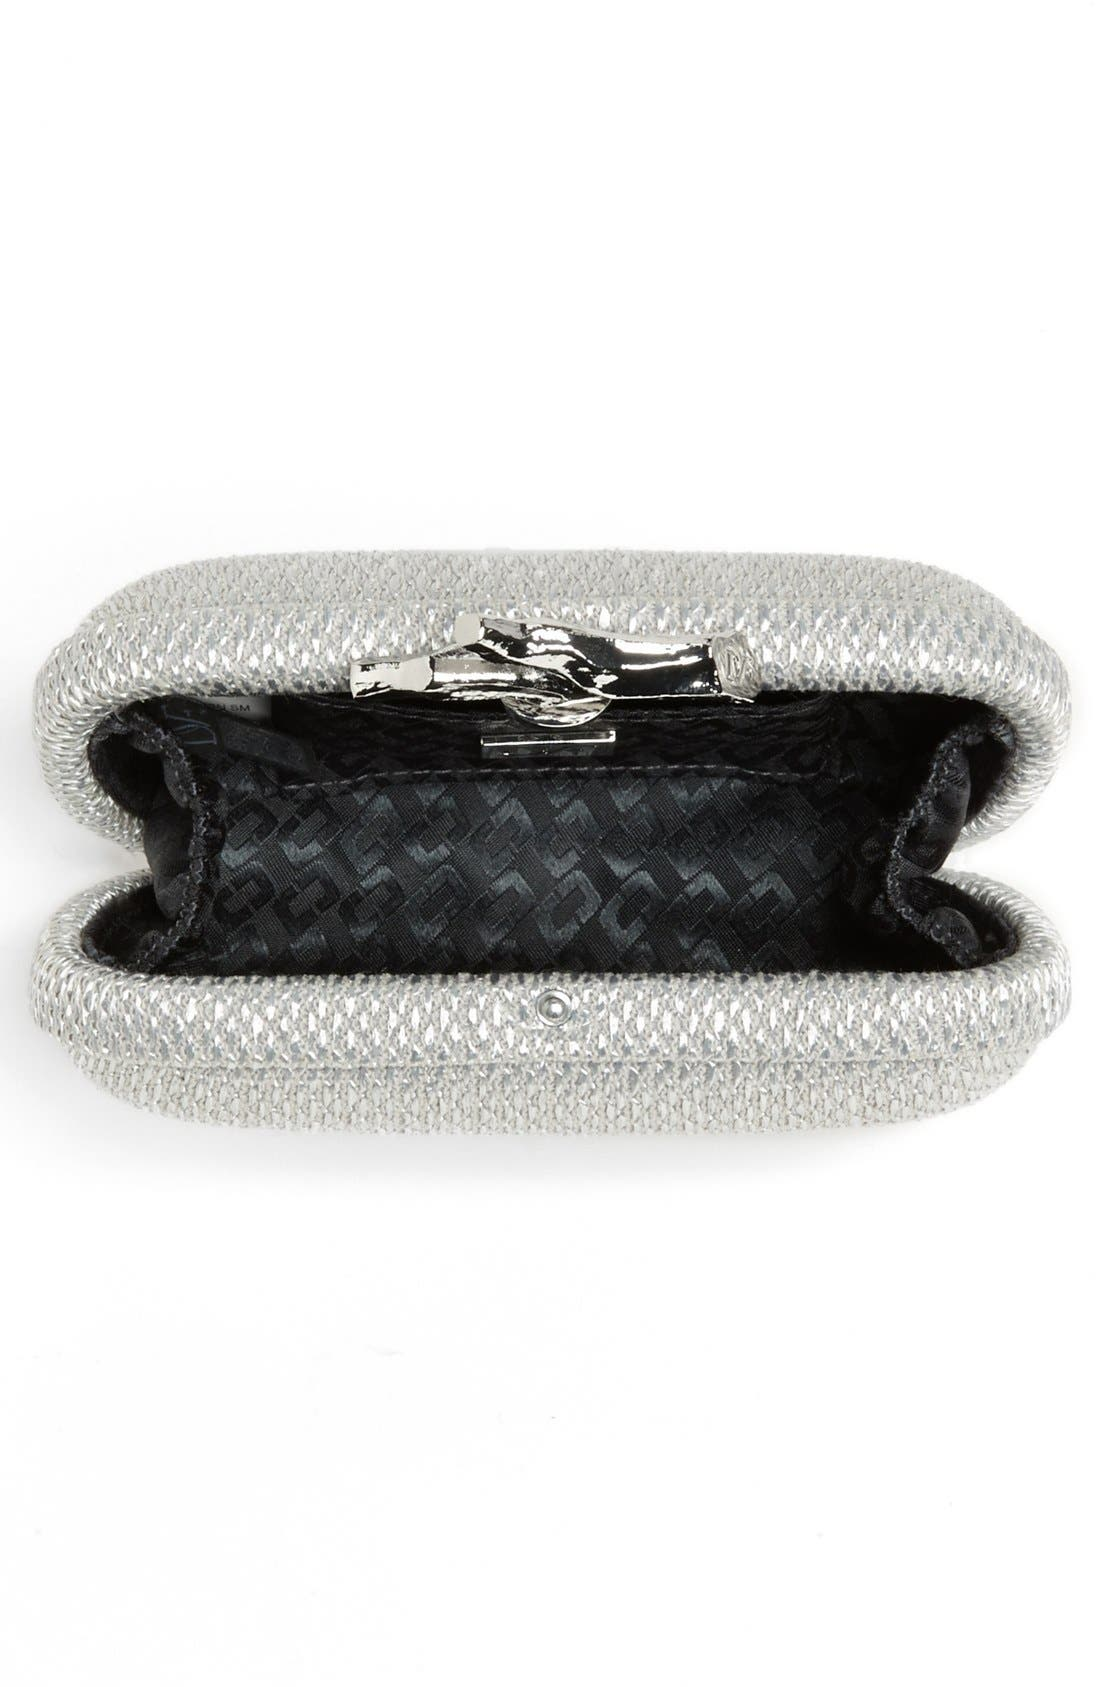 Alternate Image 2  - Diane von Furstenberg 'Lytton' Clutch